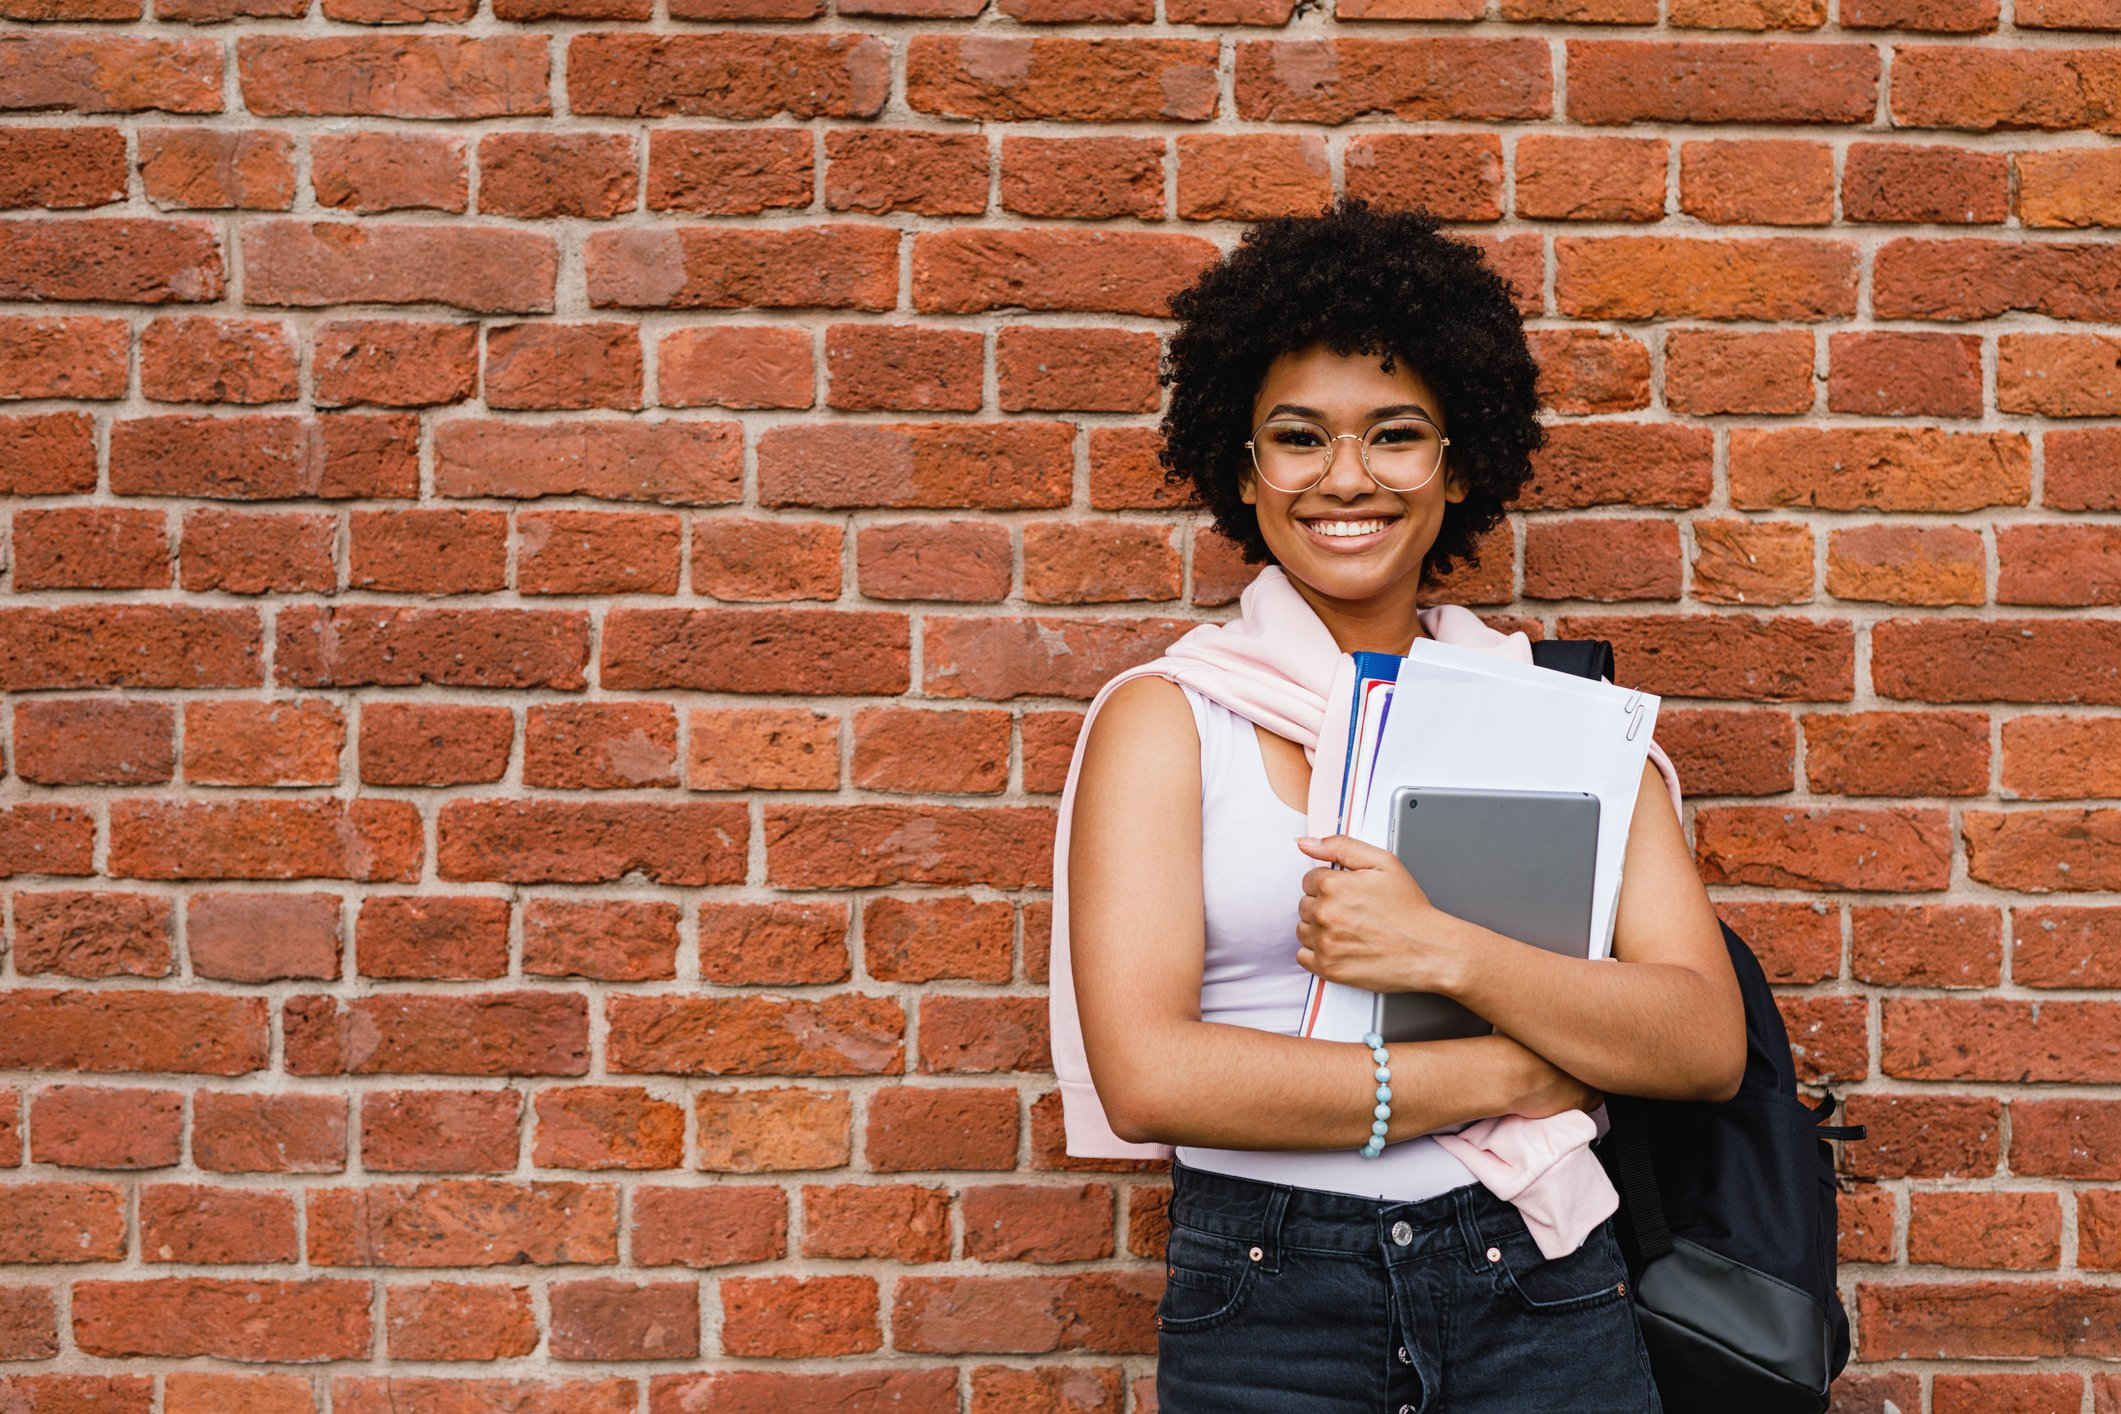 Smiling woman with books and tablet standing against brick wall.